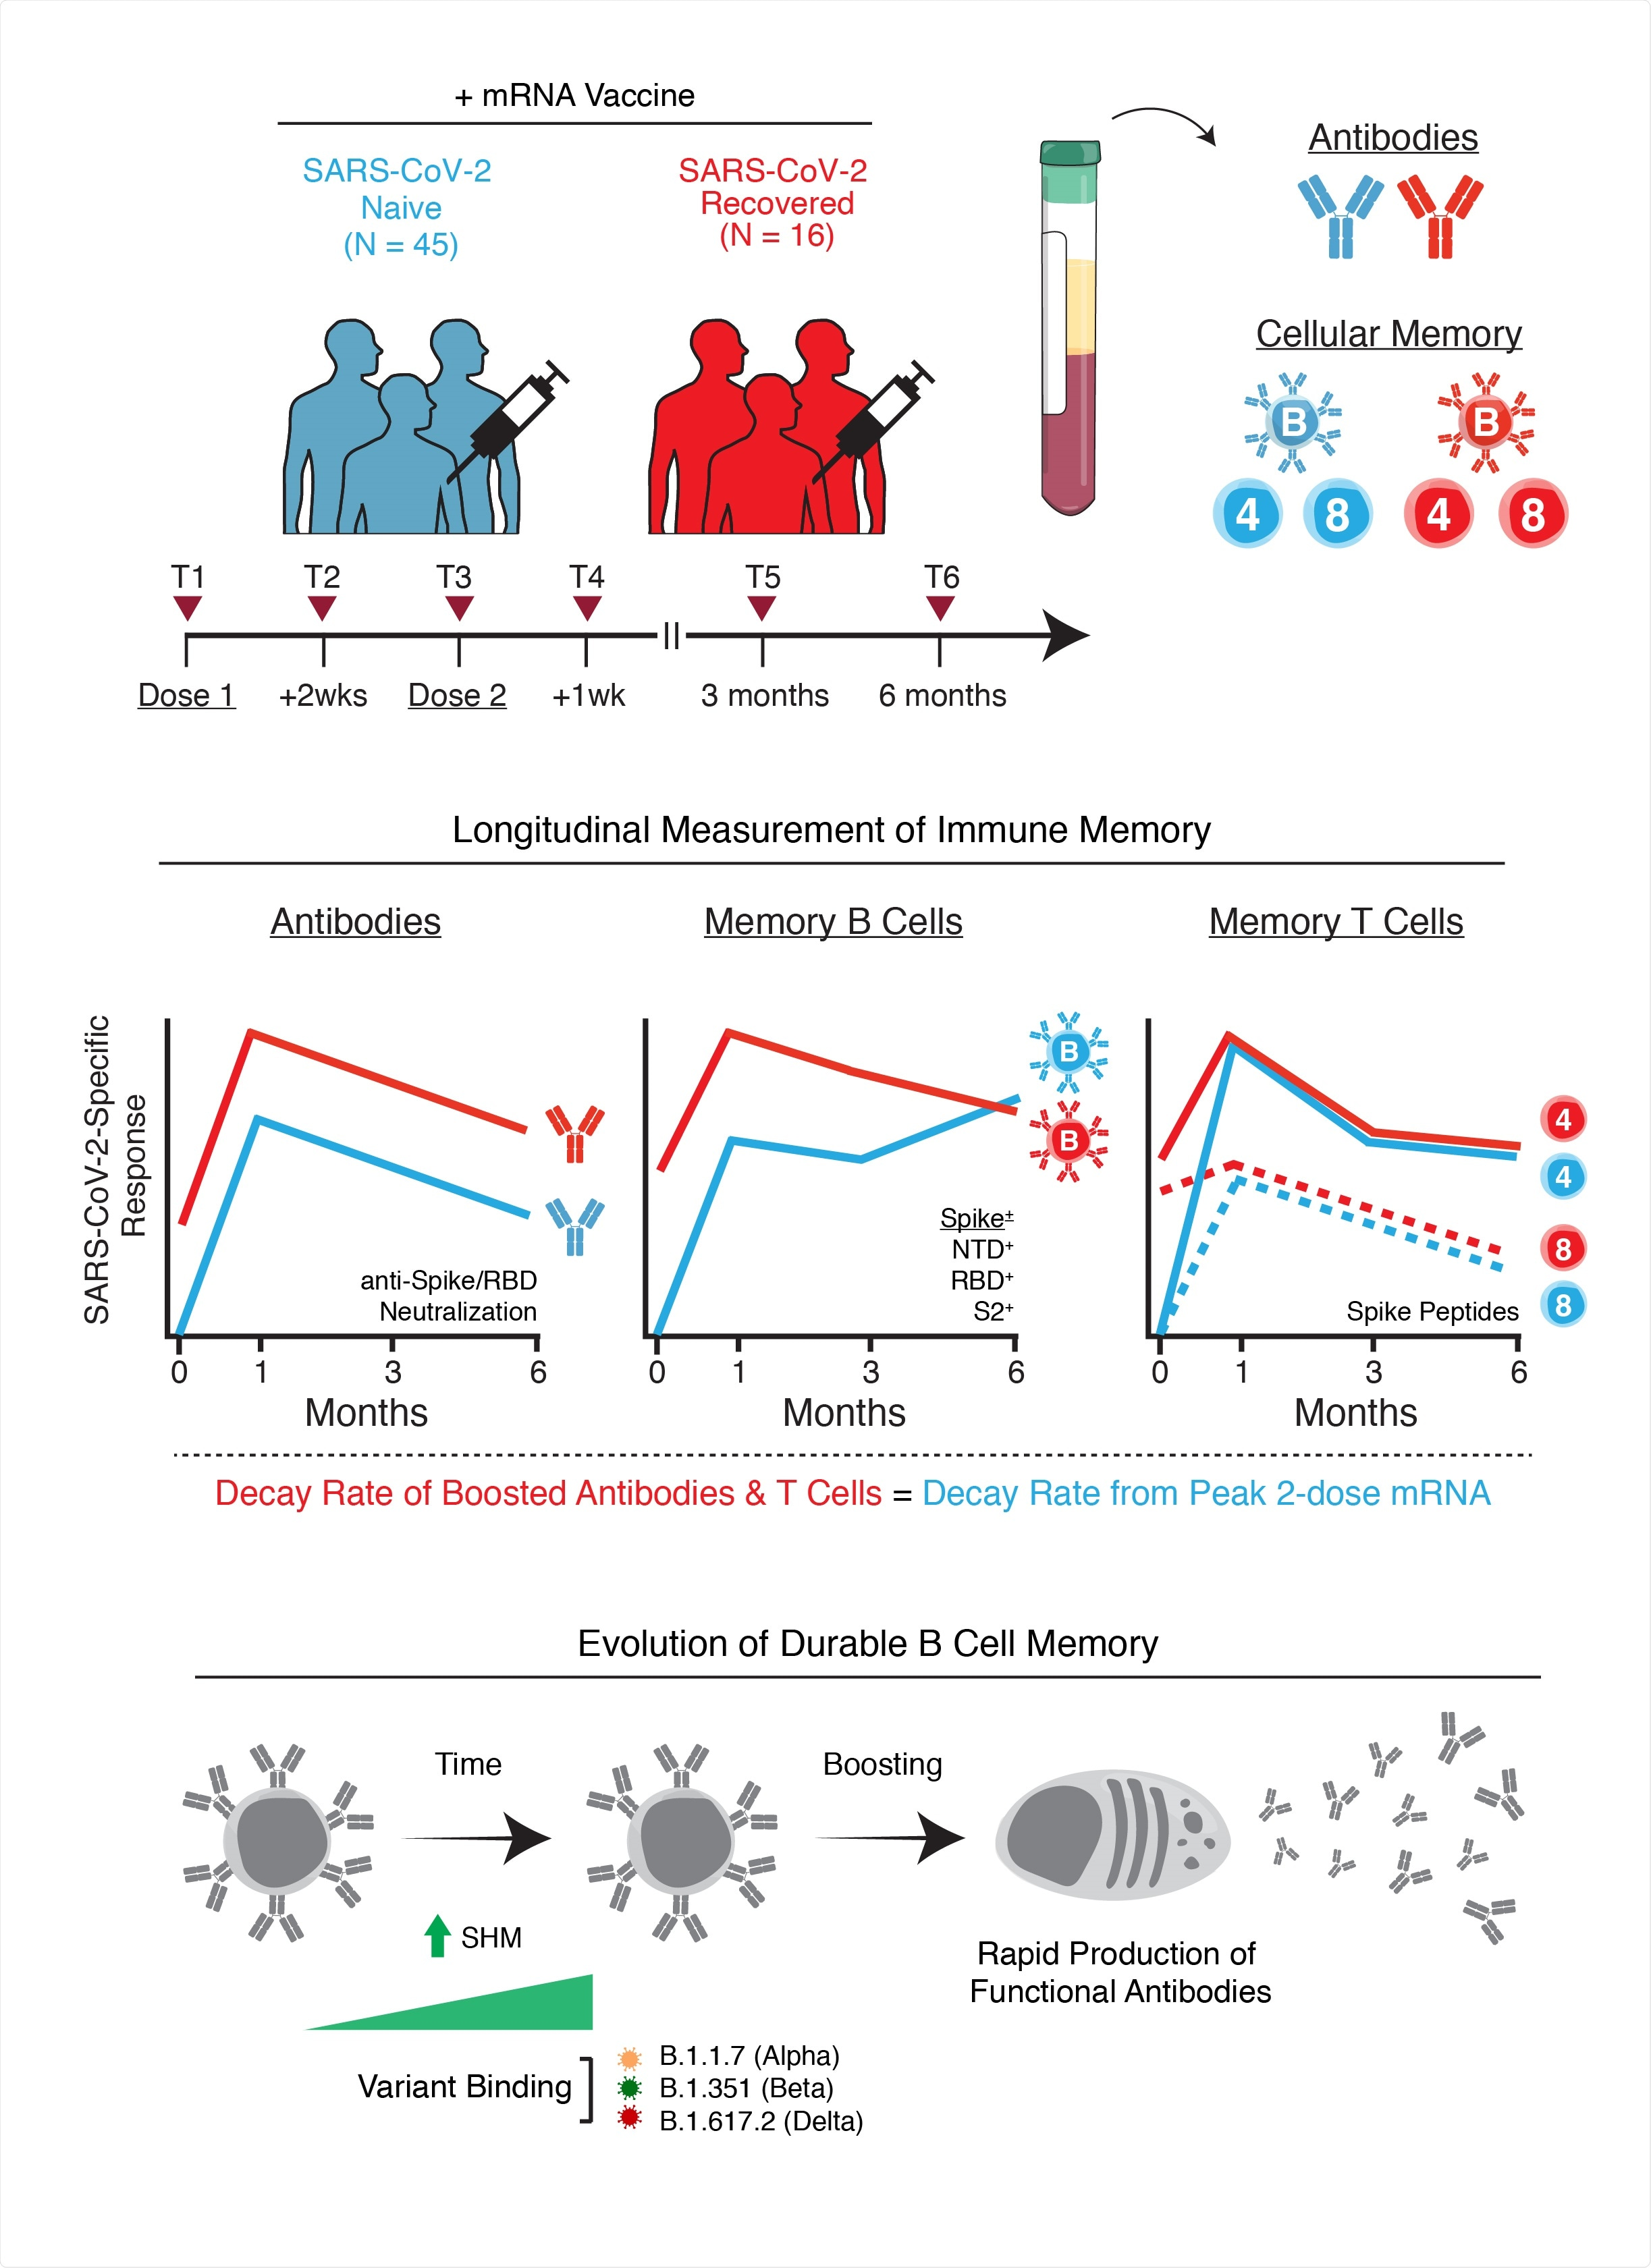 Study: mRNA Vaccination Induces Durable Immune Memory to SARS-CoV-2 with Continued Evolution to Variants of Concern